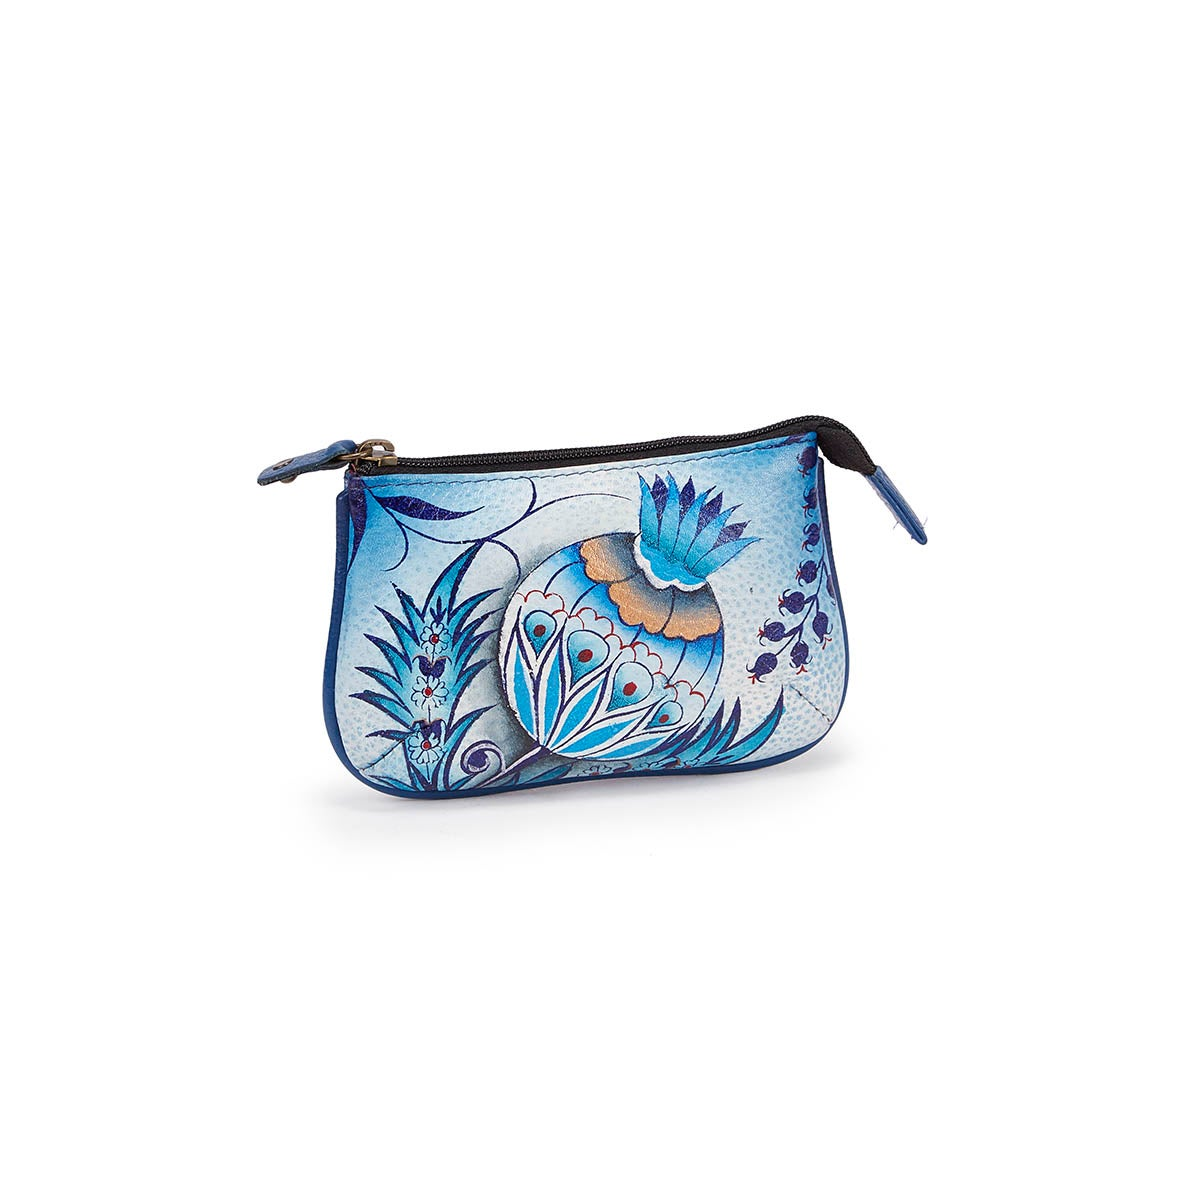 Printed lthr Bewitching Blues coin purse